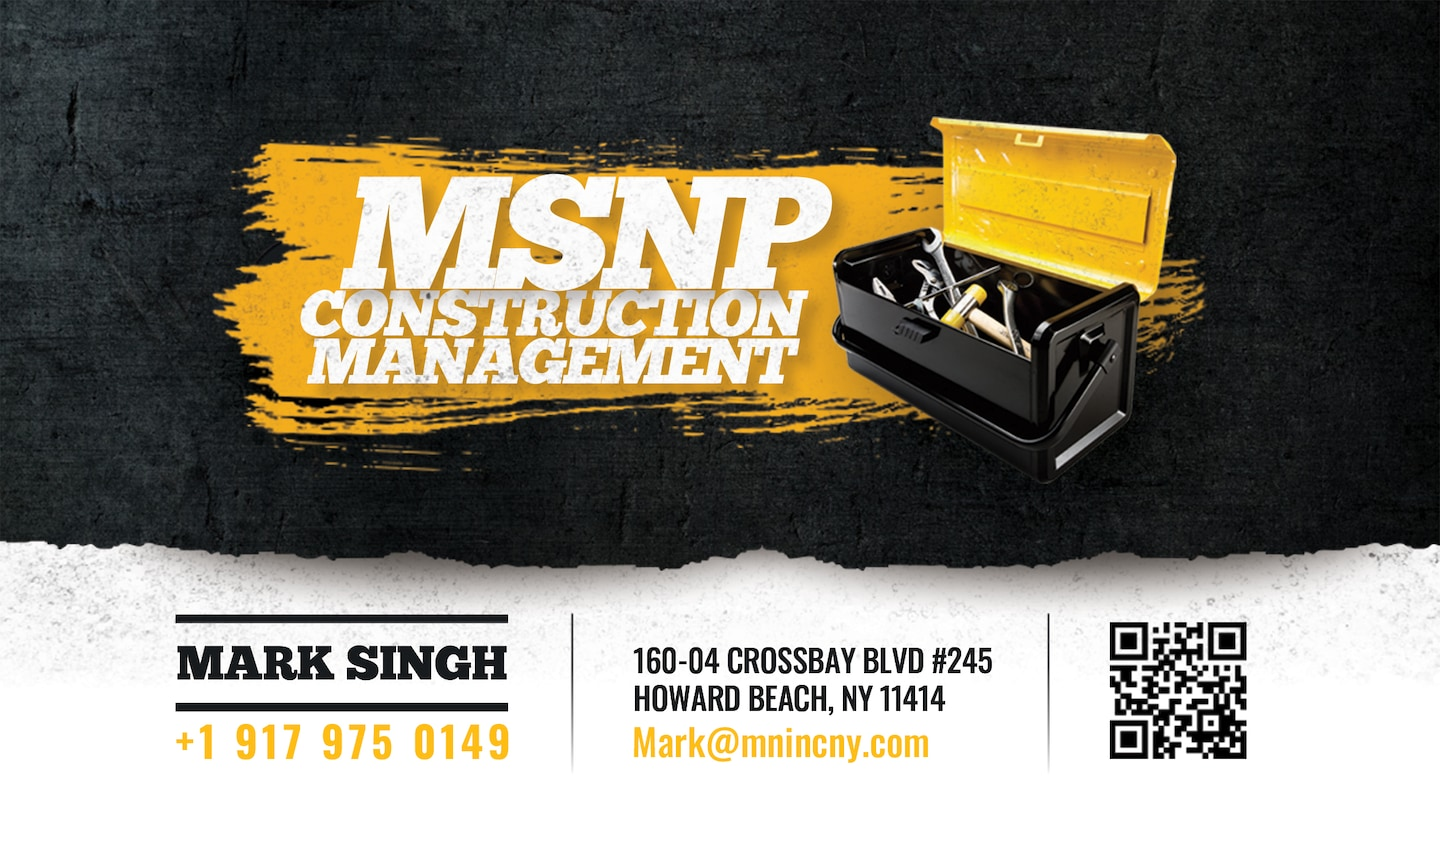 MSNP CONSTRUCTION MANAGEMENT INC.